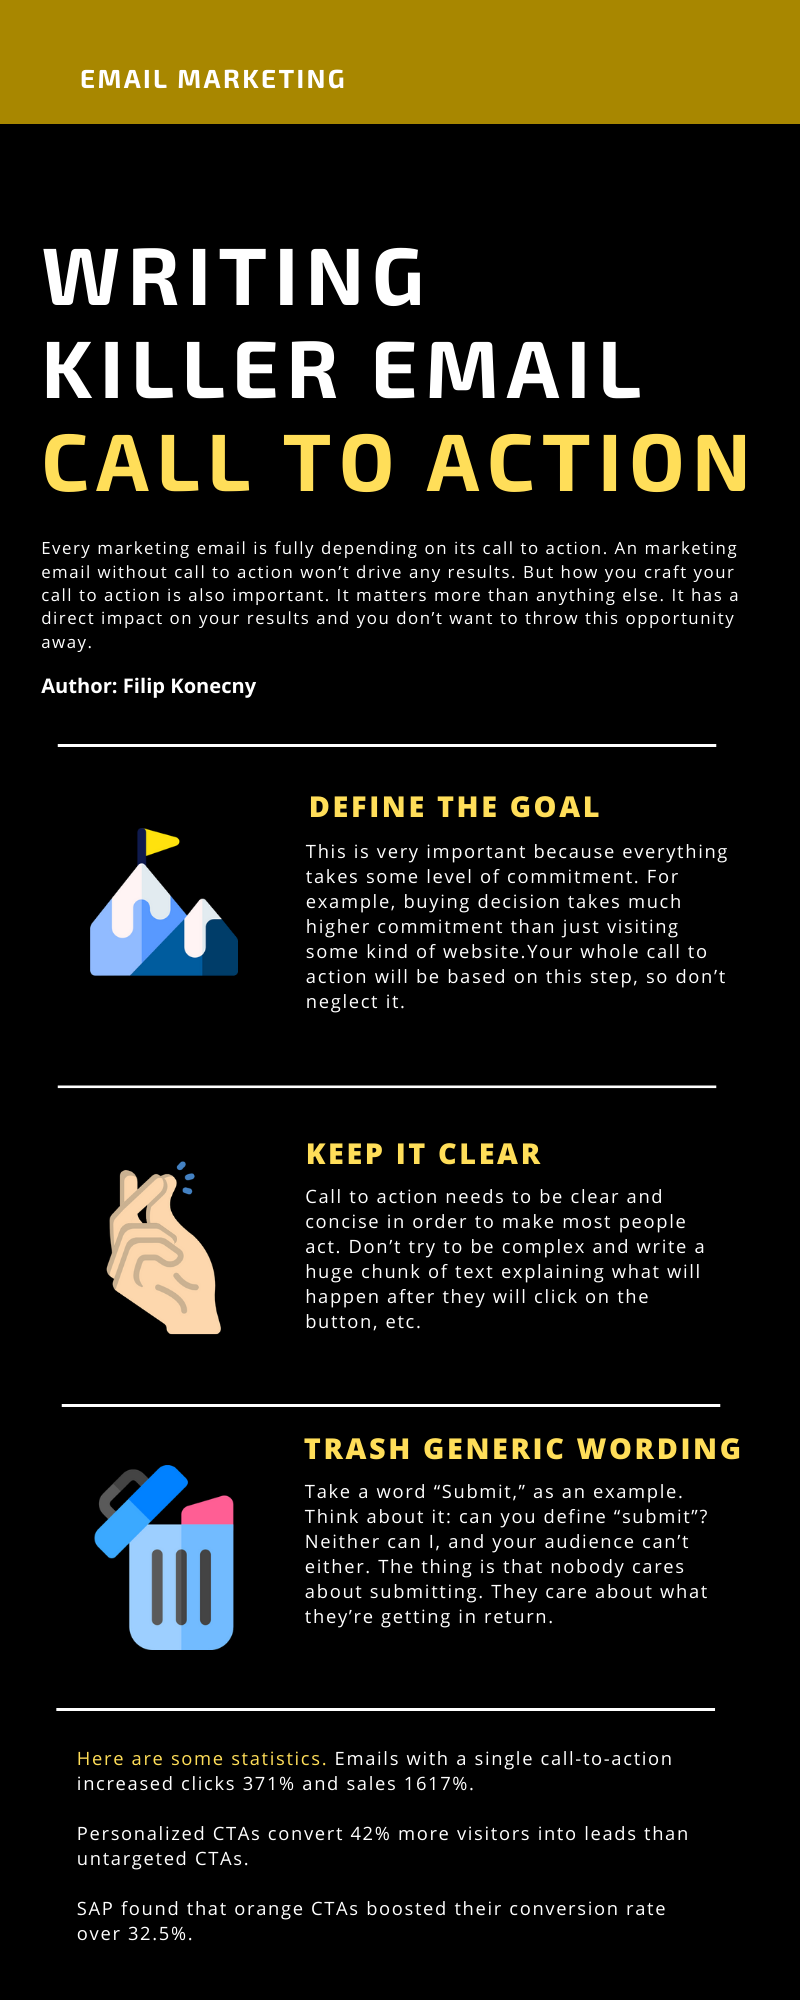 Infographic demonstrating the power of call to actions in email marketing.